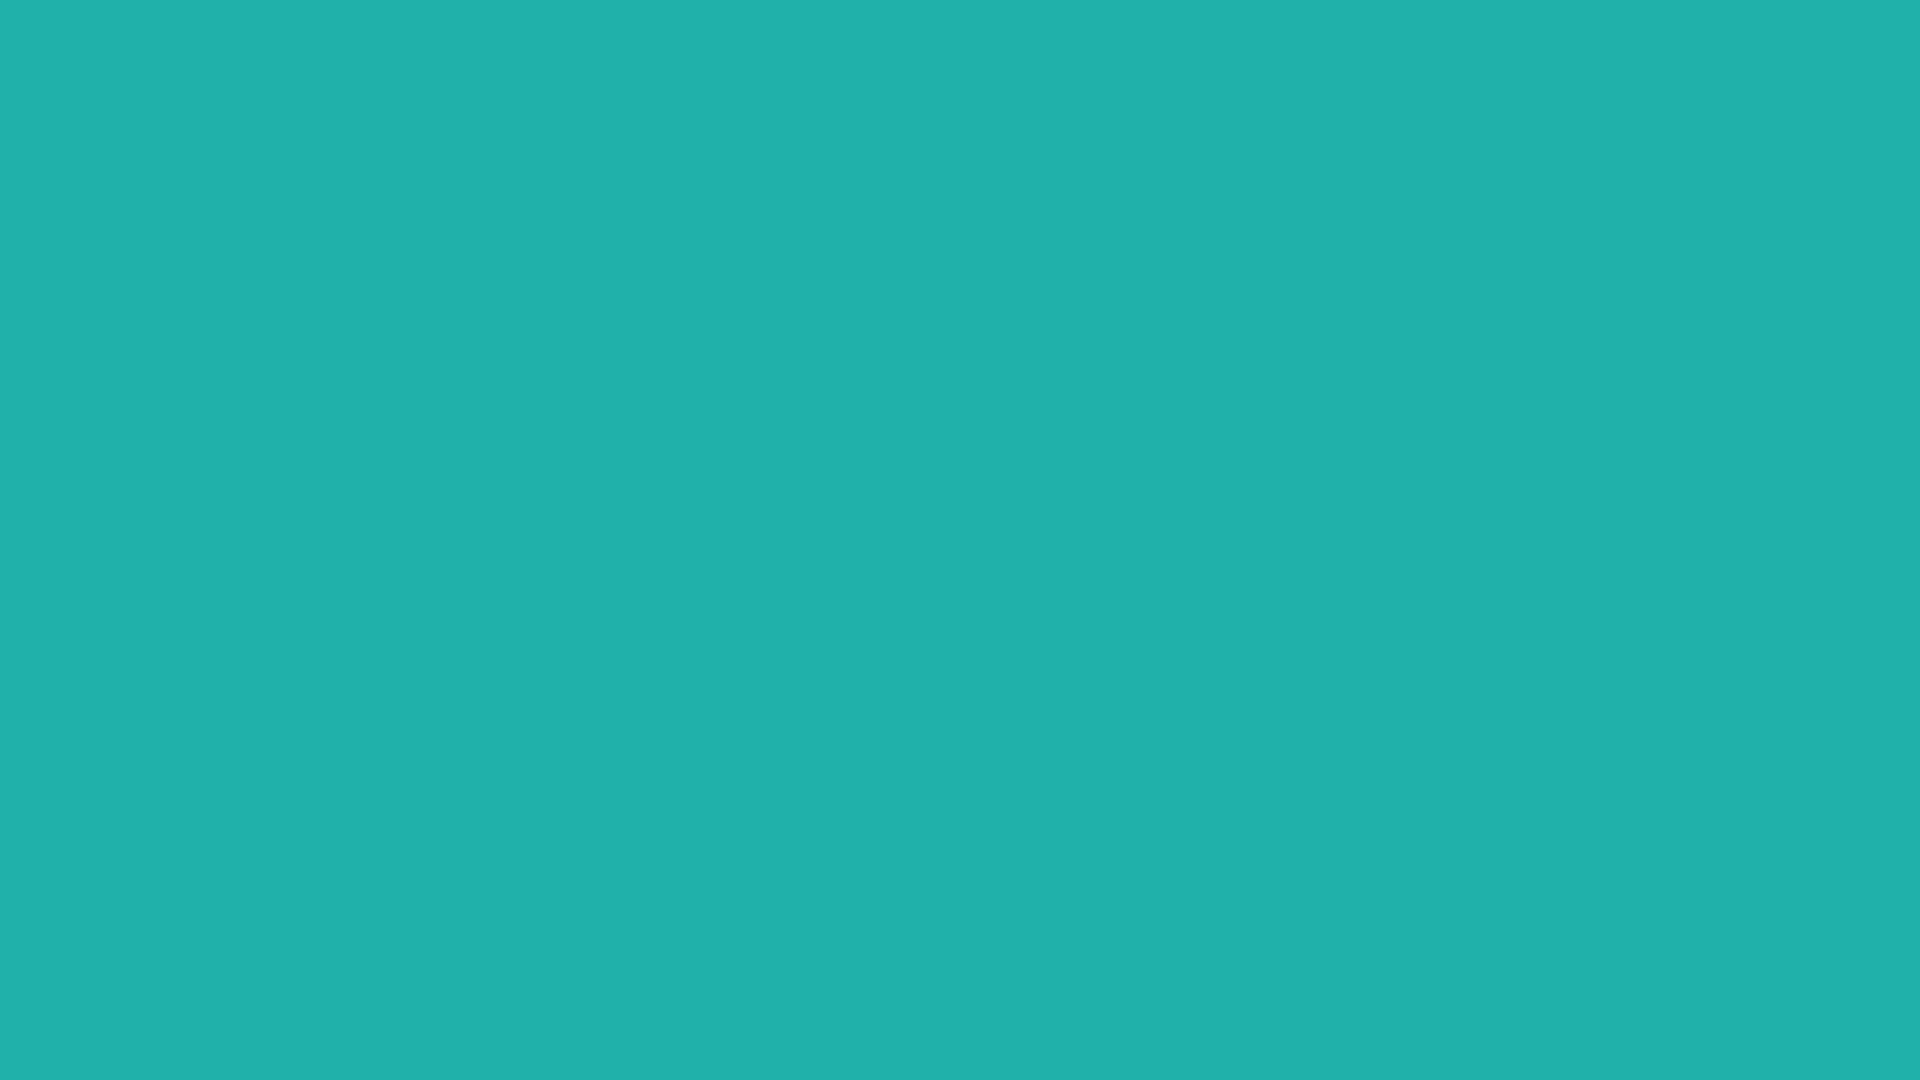 1920x1080 Light Sea Green Solid Color Background